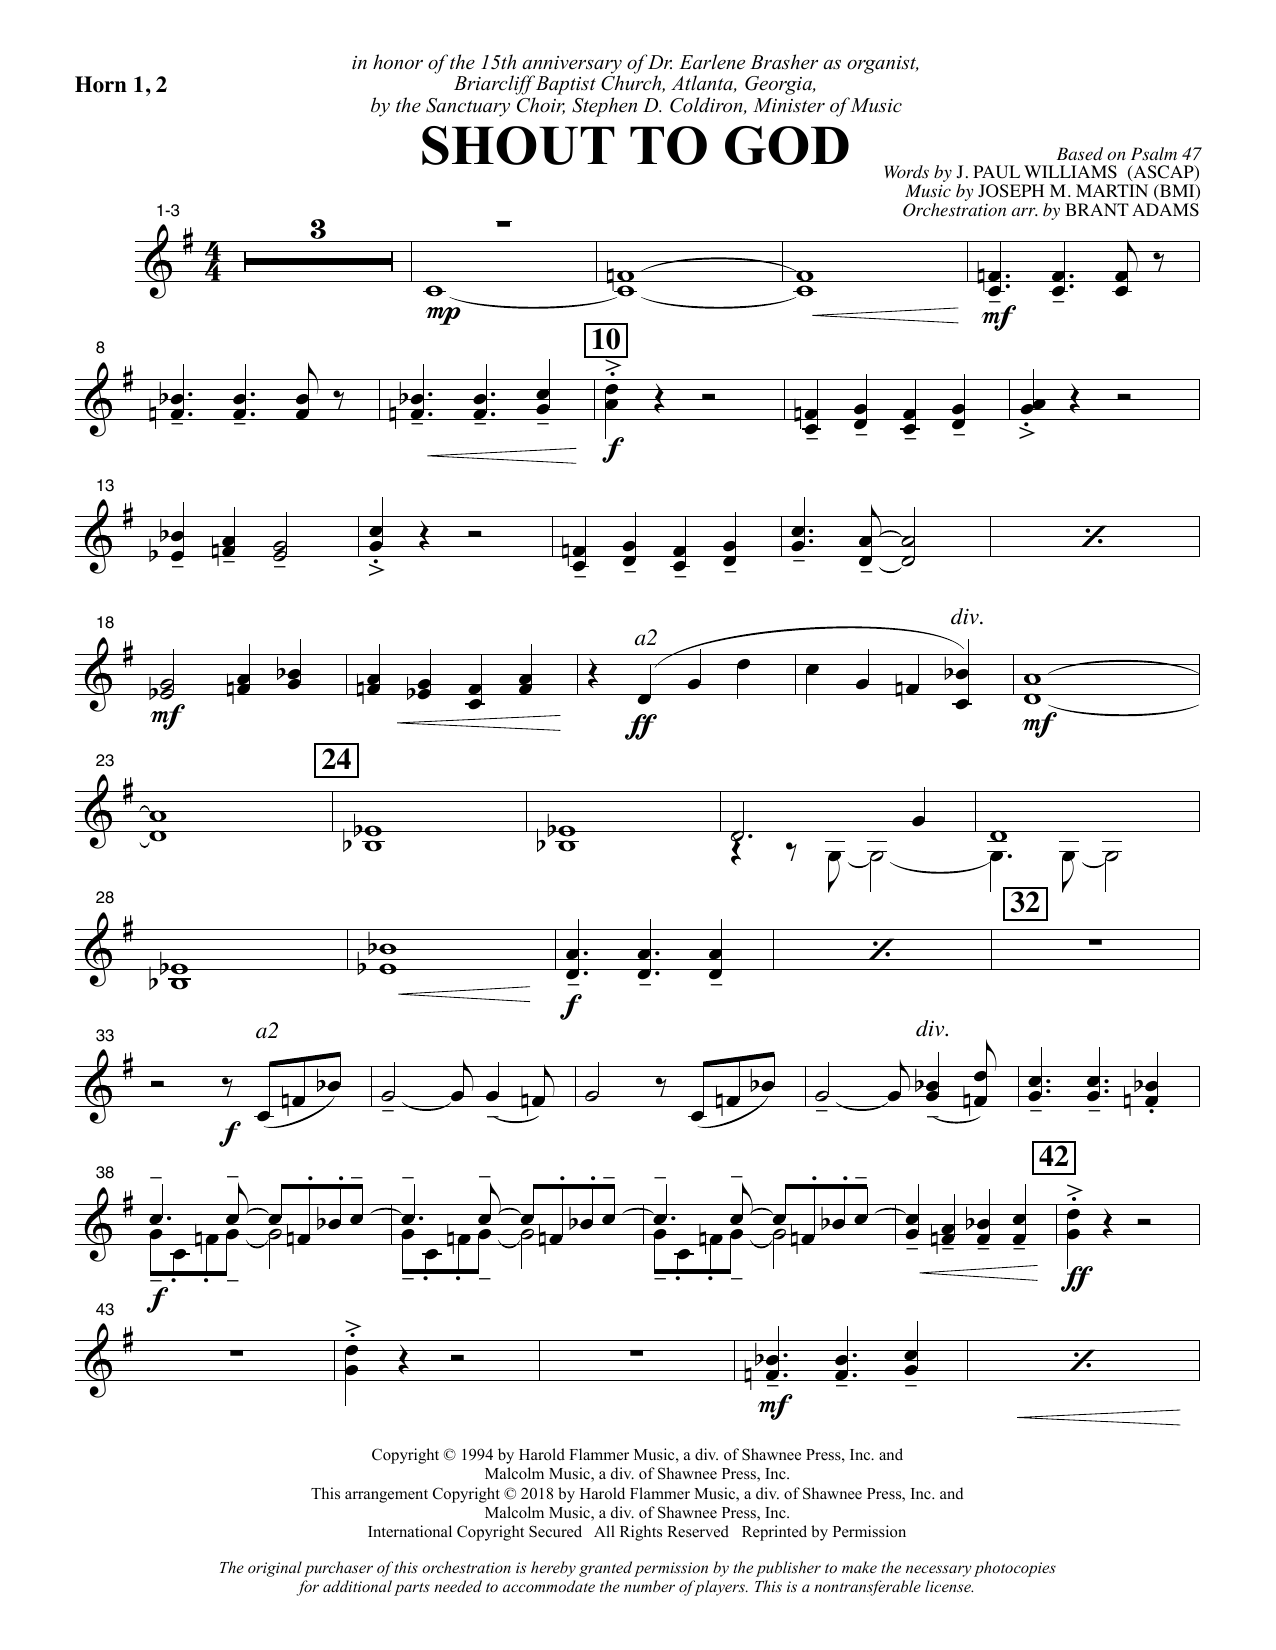 Shout to God - F Horn 1 & 2 Sheet Music